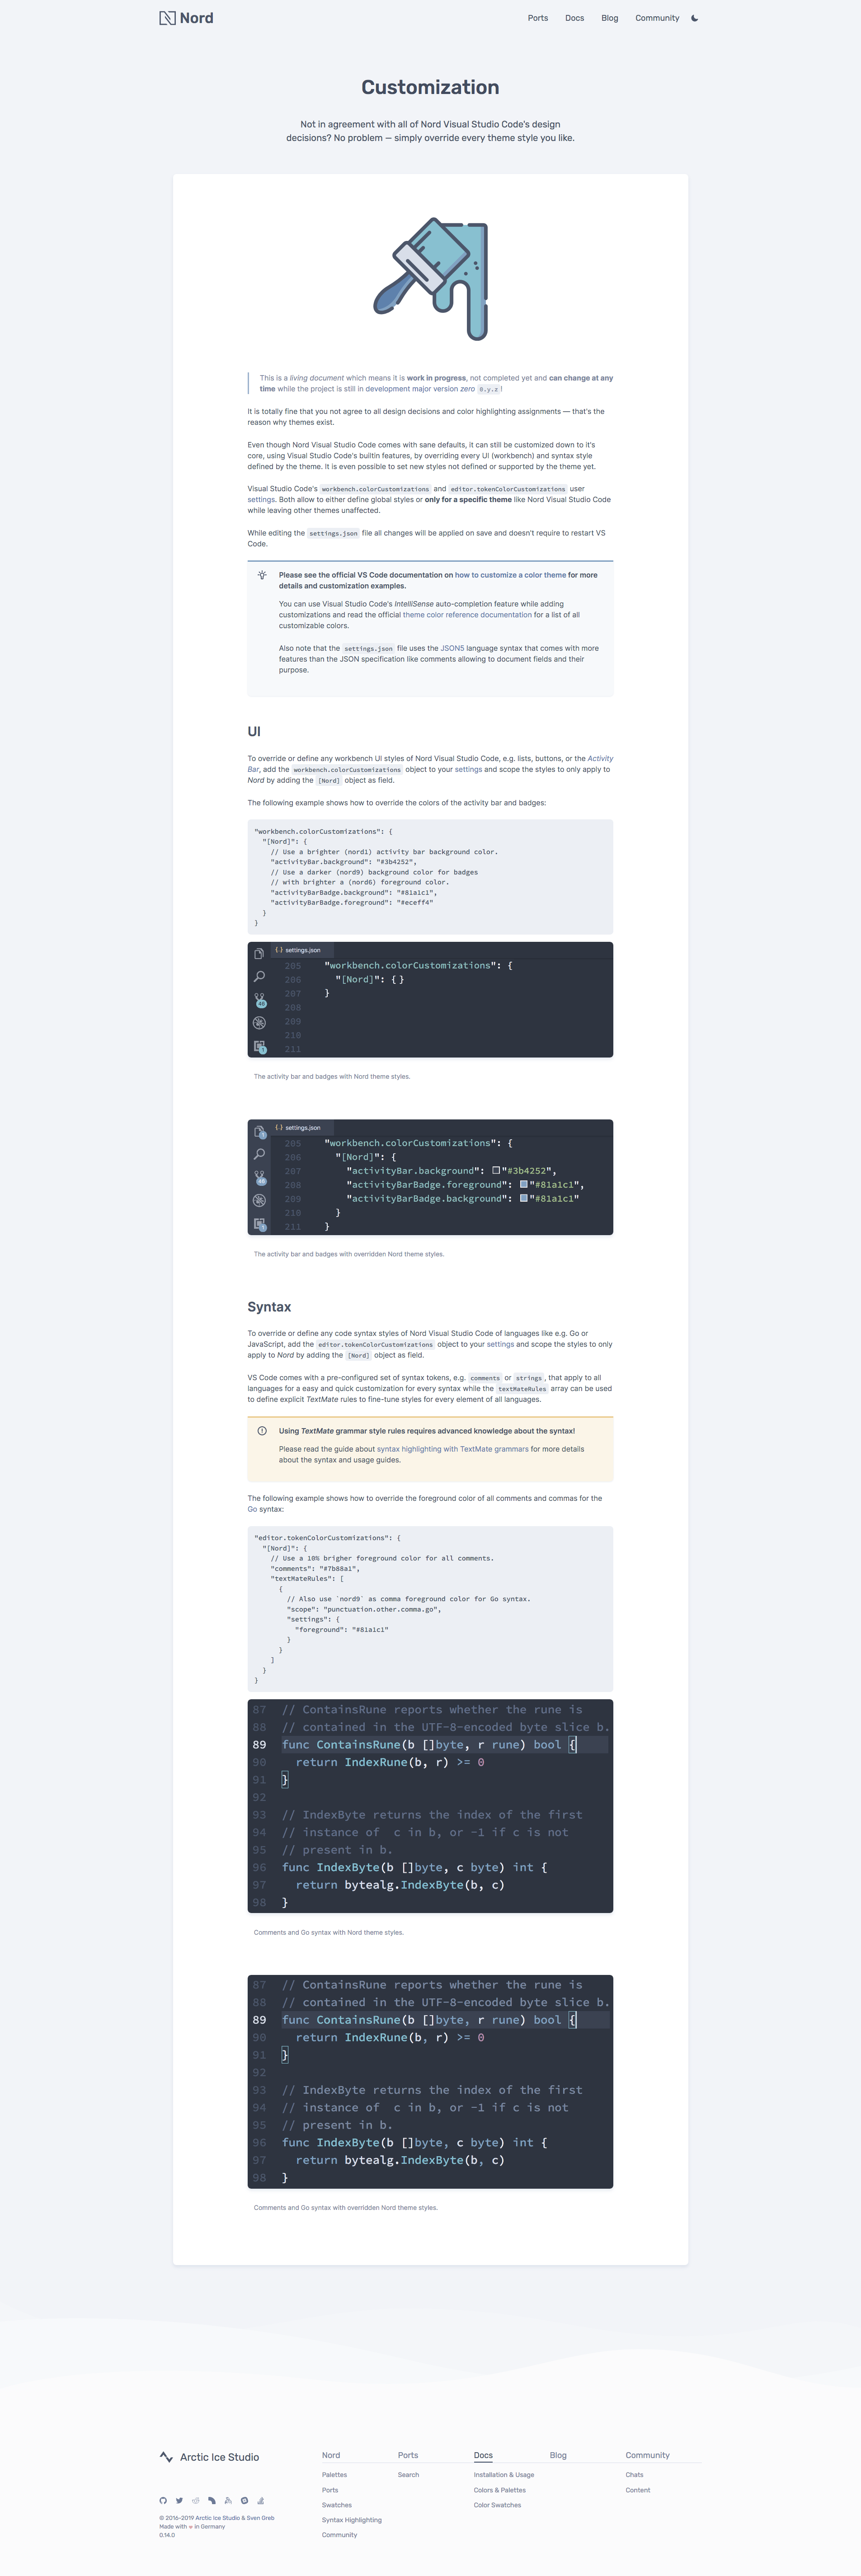 Preview: Nord Visual Studio Code Docs Customization Docs Page